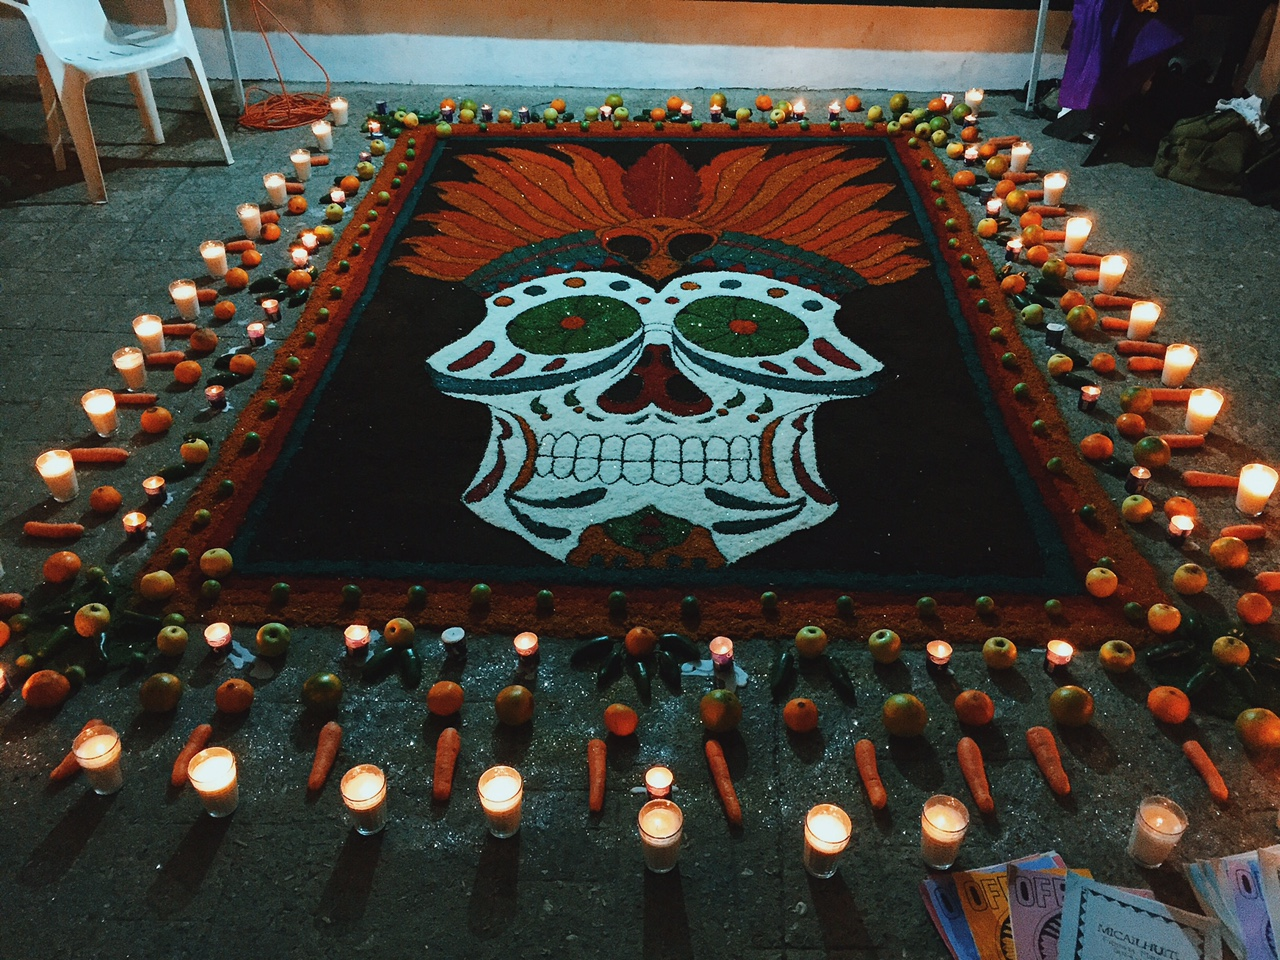 One of the many alters around town, created by hand over days and made with colored sawdust, candles and fresh veggies